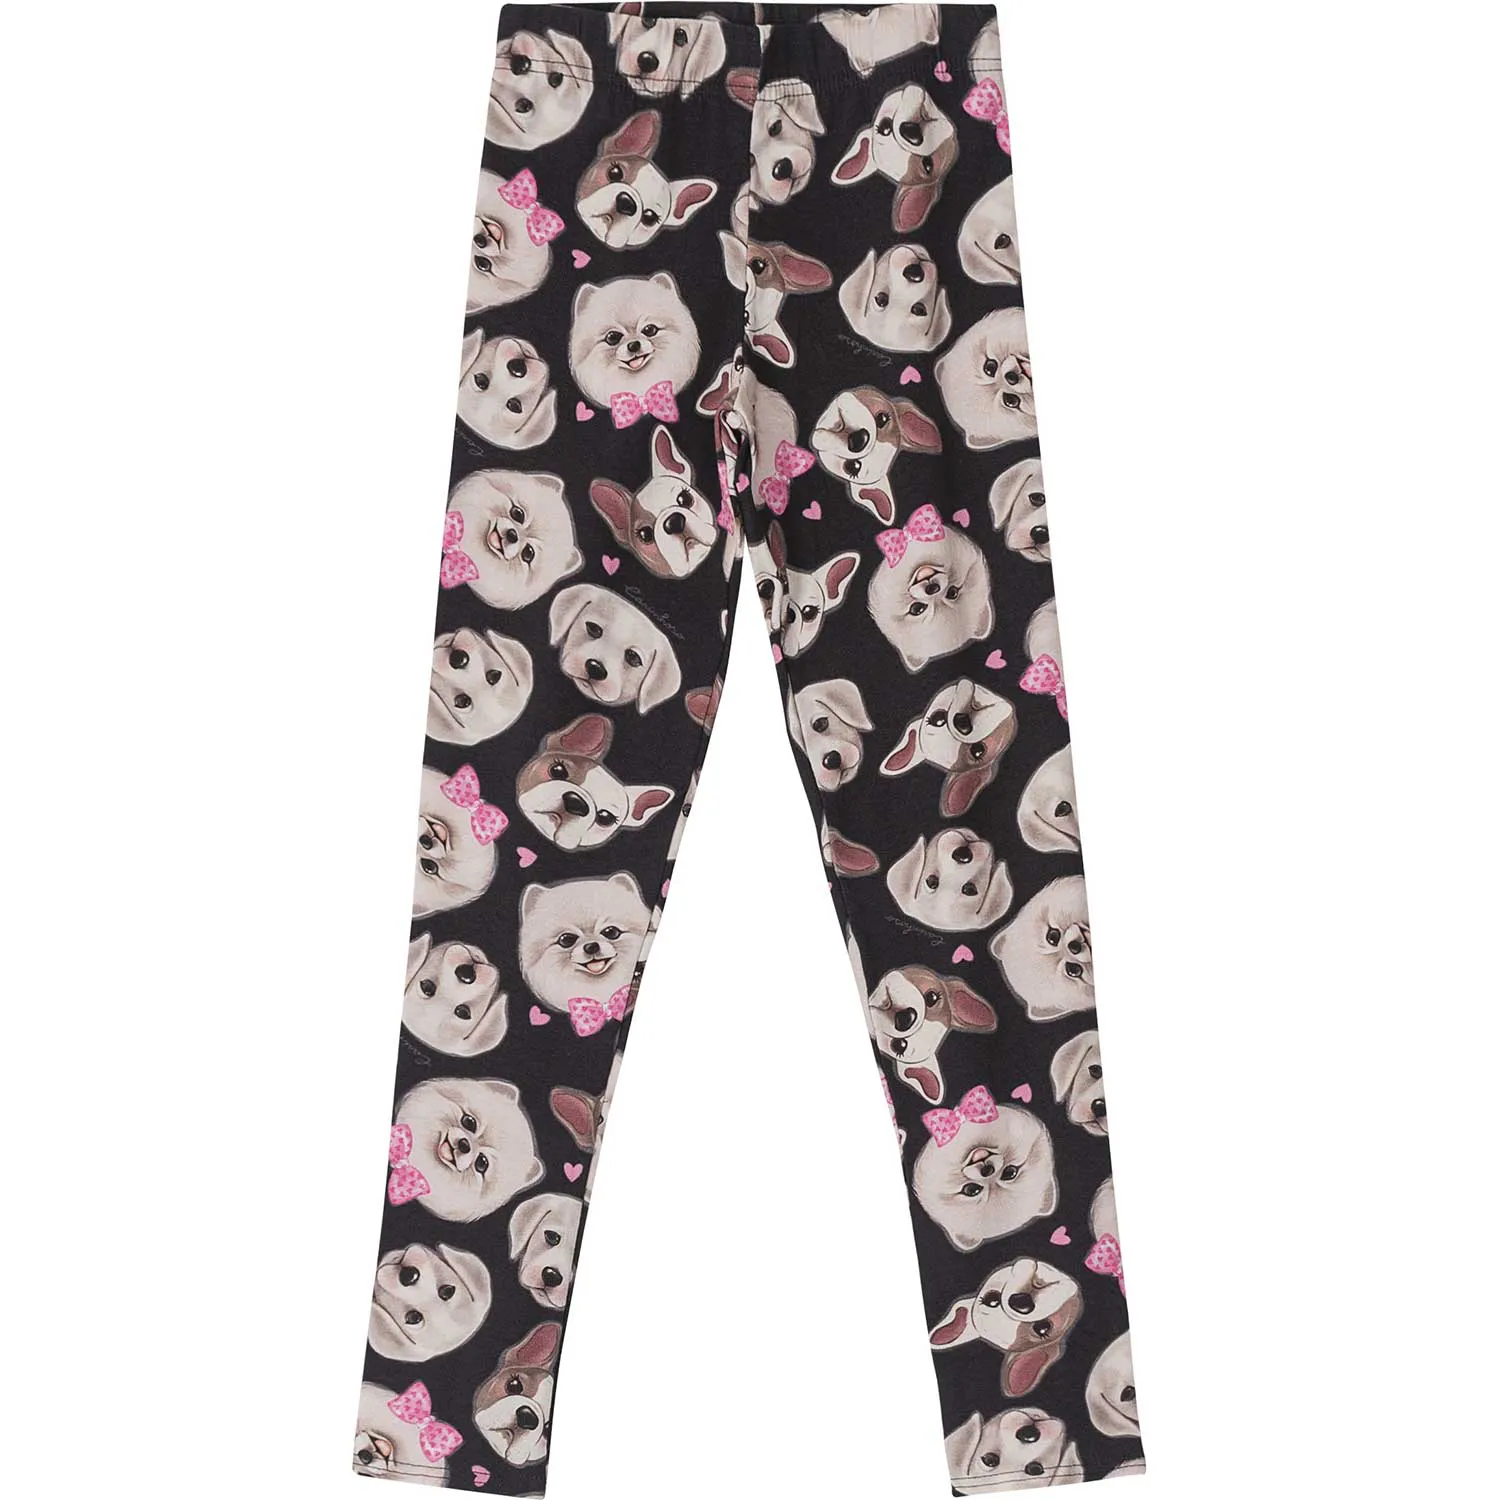 LEGGING COTTON ESTAMPADA CARINHOSO REF:1000070369 4/8